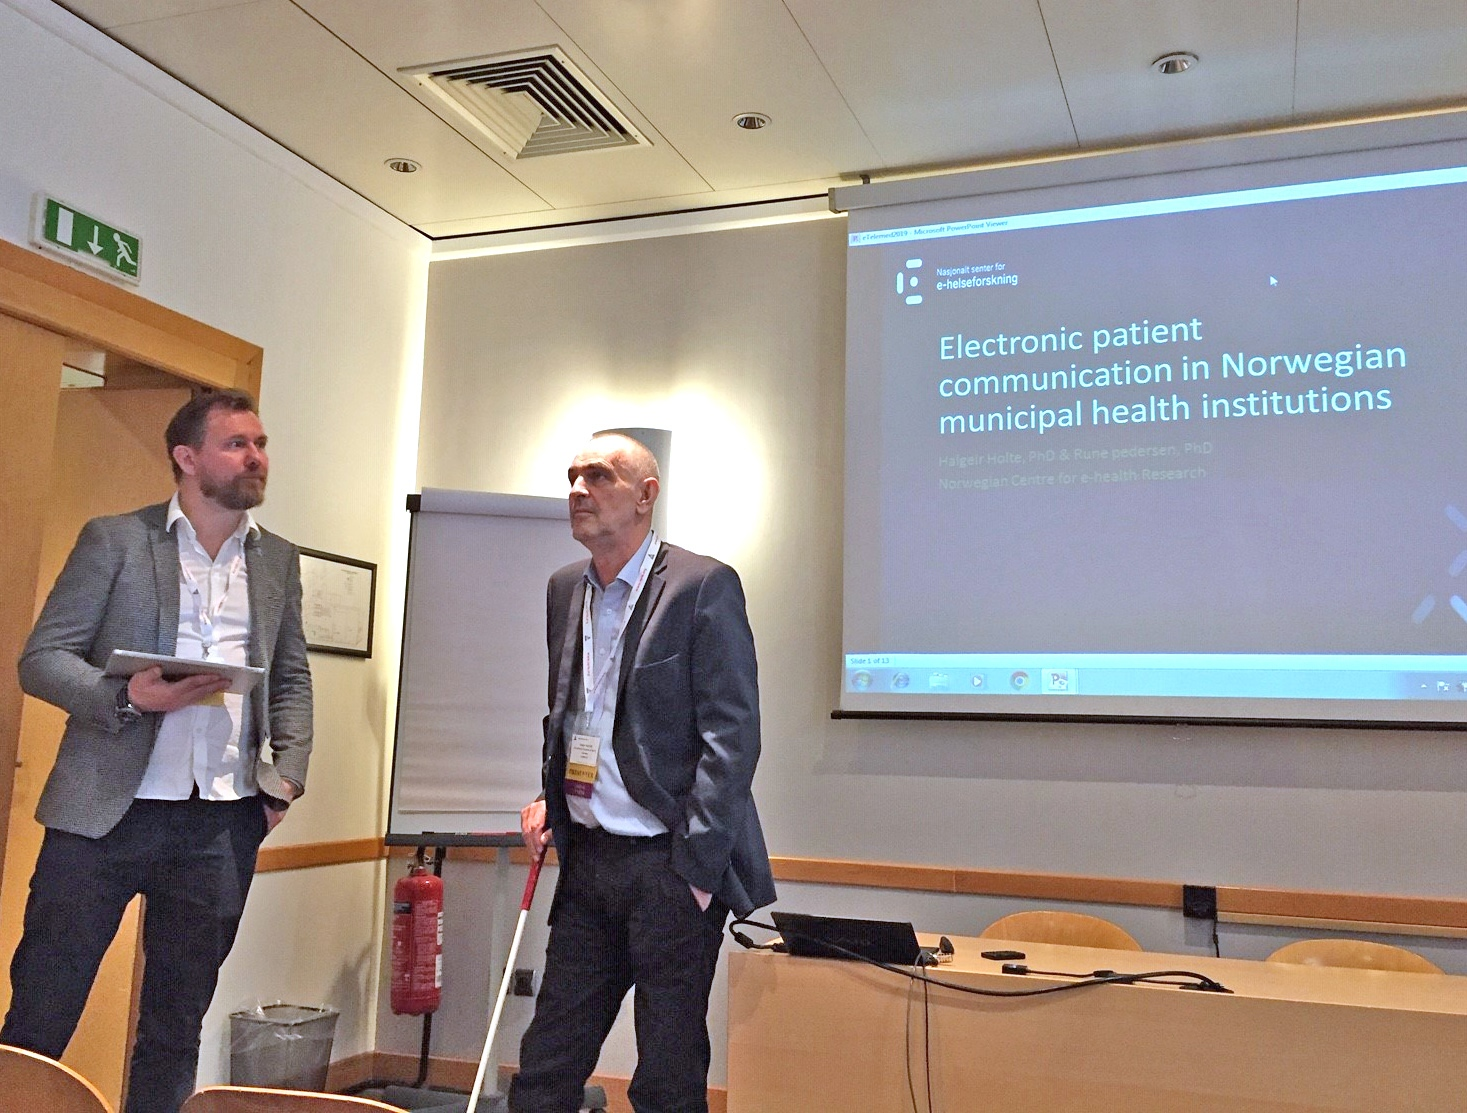 From left: Rune Pedersen and Halgeir Holthe, Norwegian Centre for E-health Research.